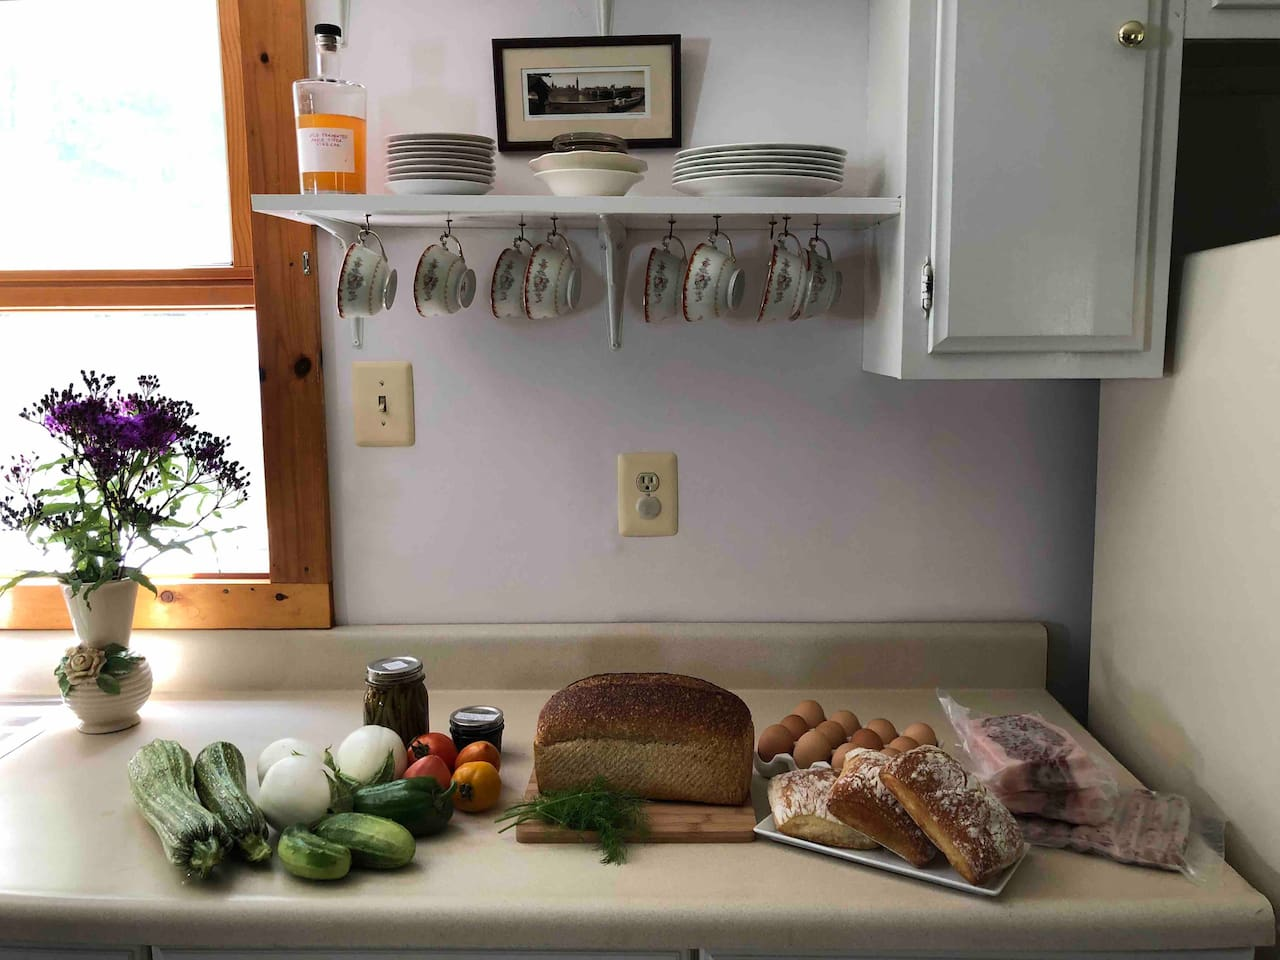 Come stay at Lost Croft Cabin and cook delicious farm meals in the open-plan kitchen with the #pantrypackage food option.